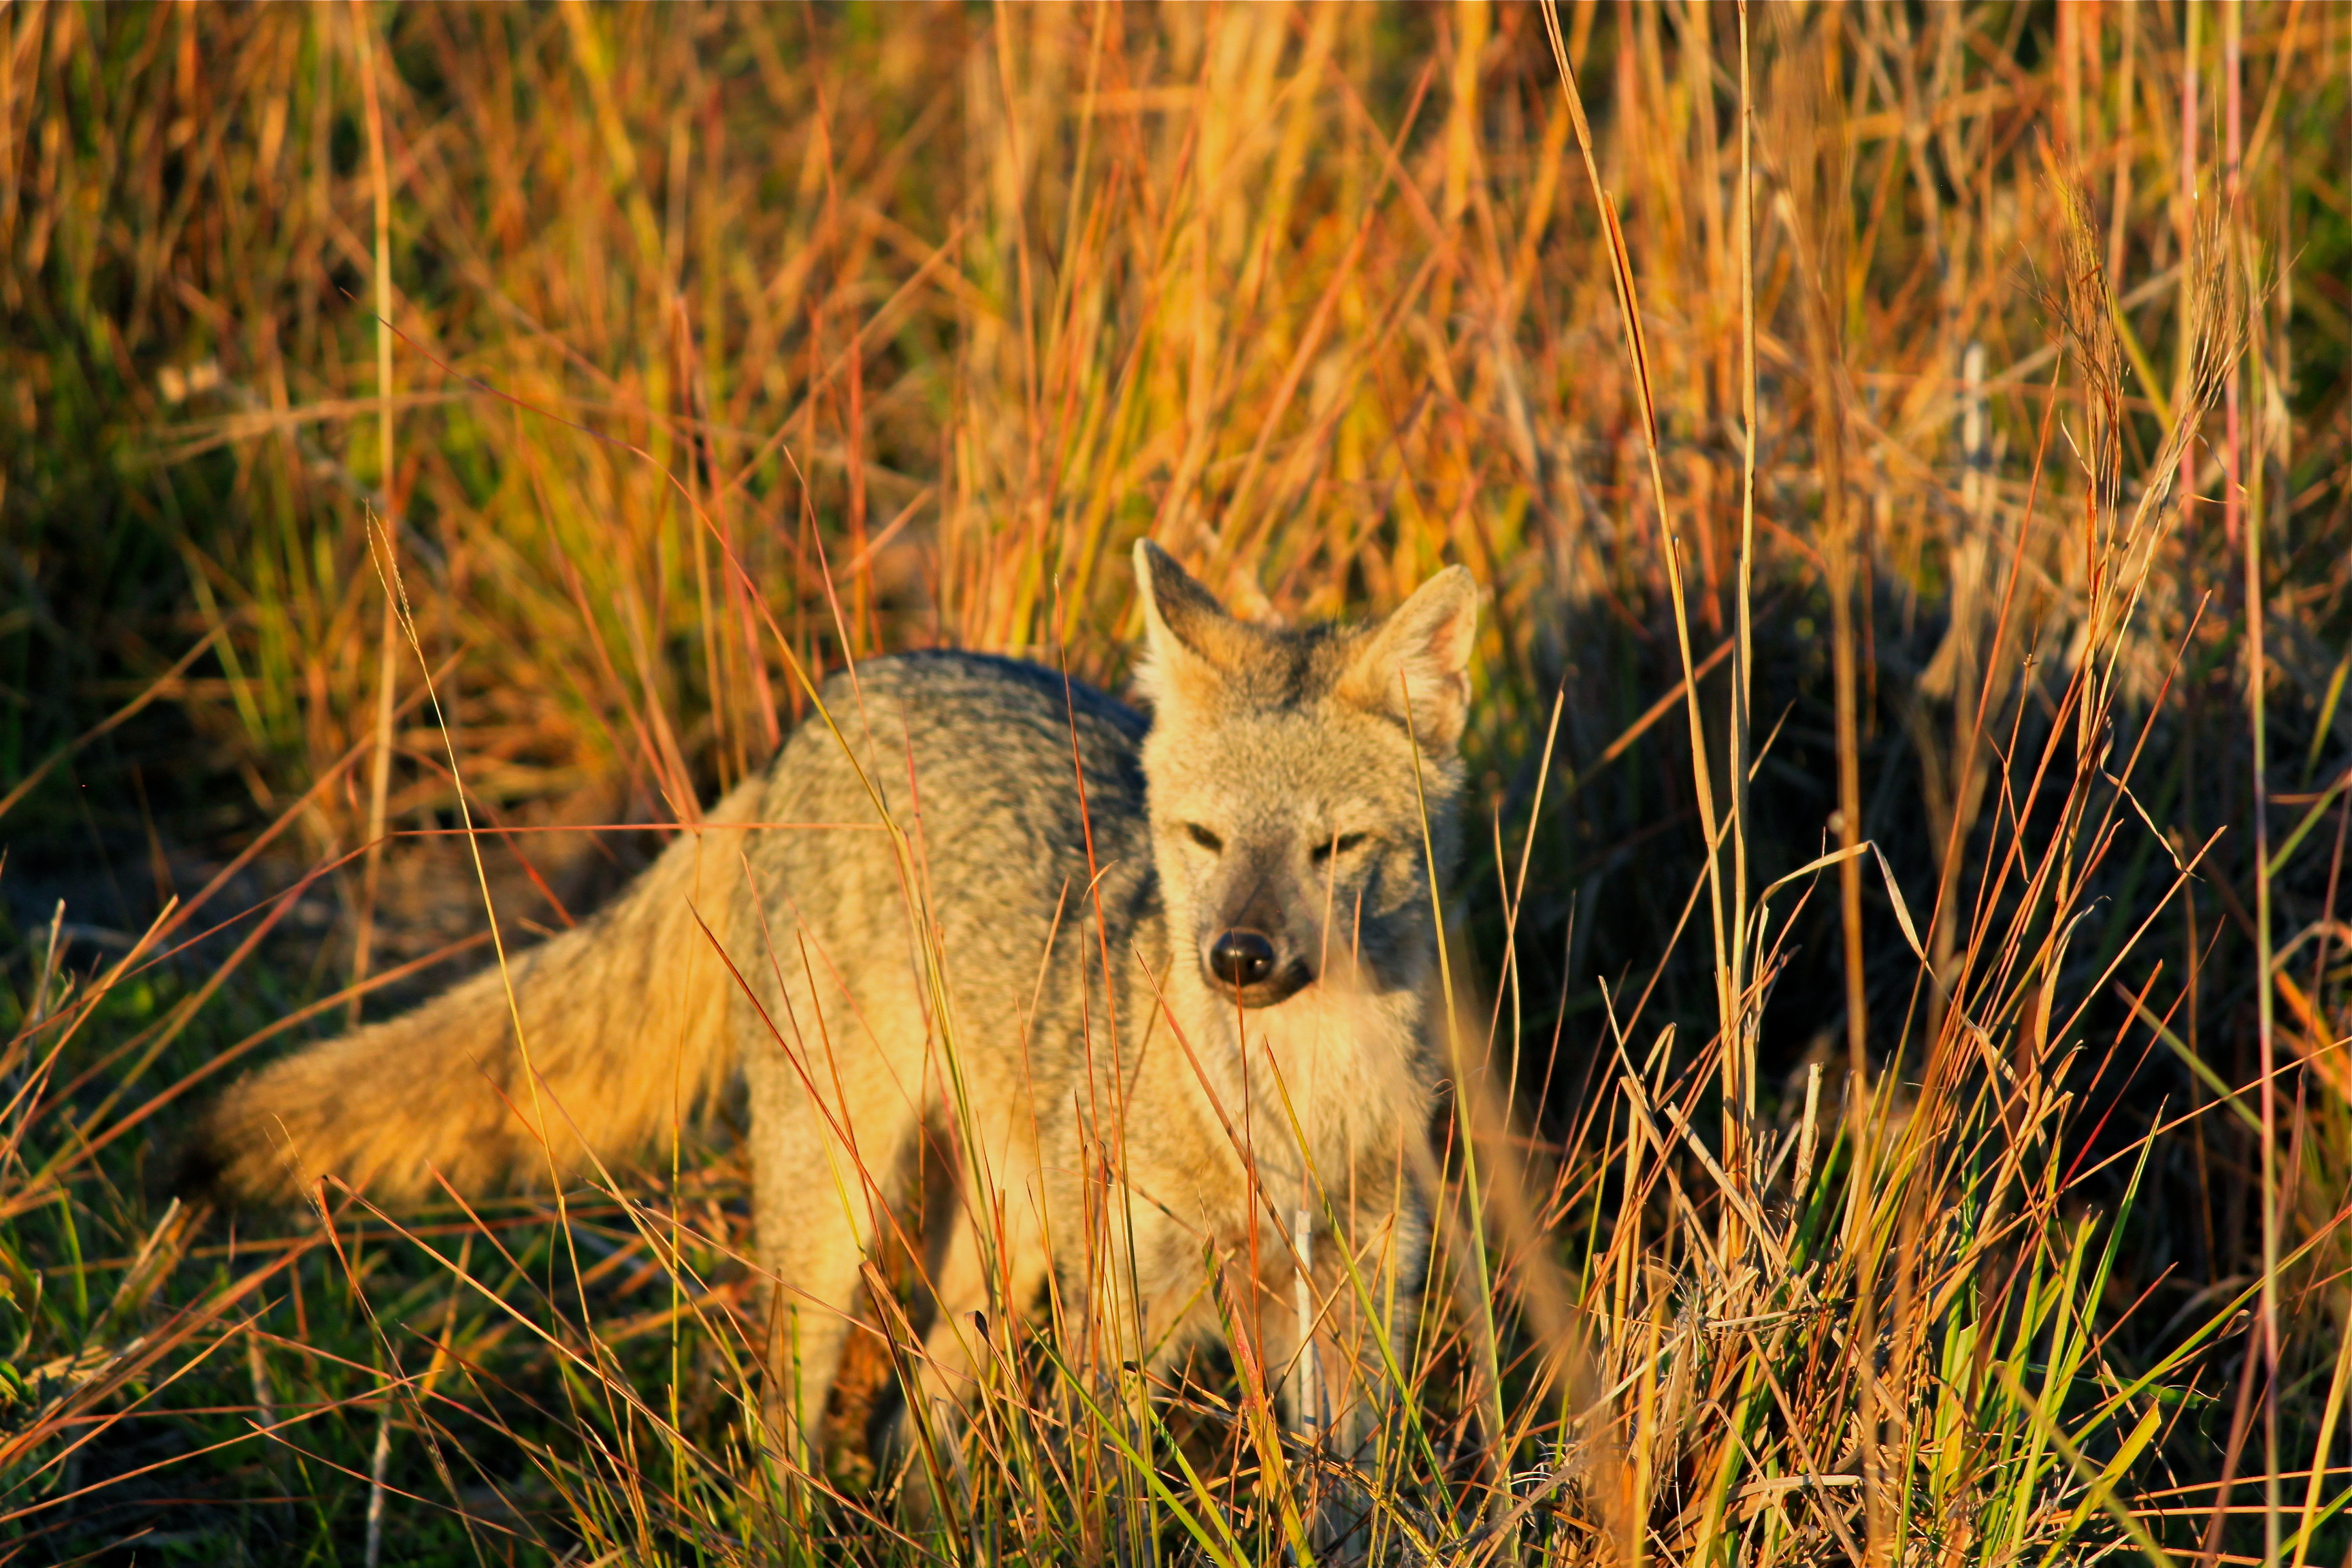 crab-eating fox pantanal brazil